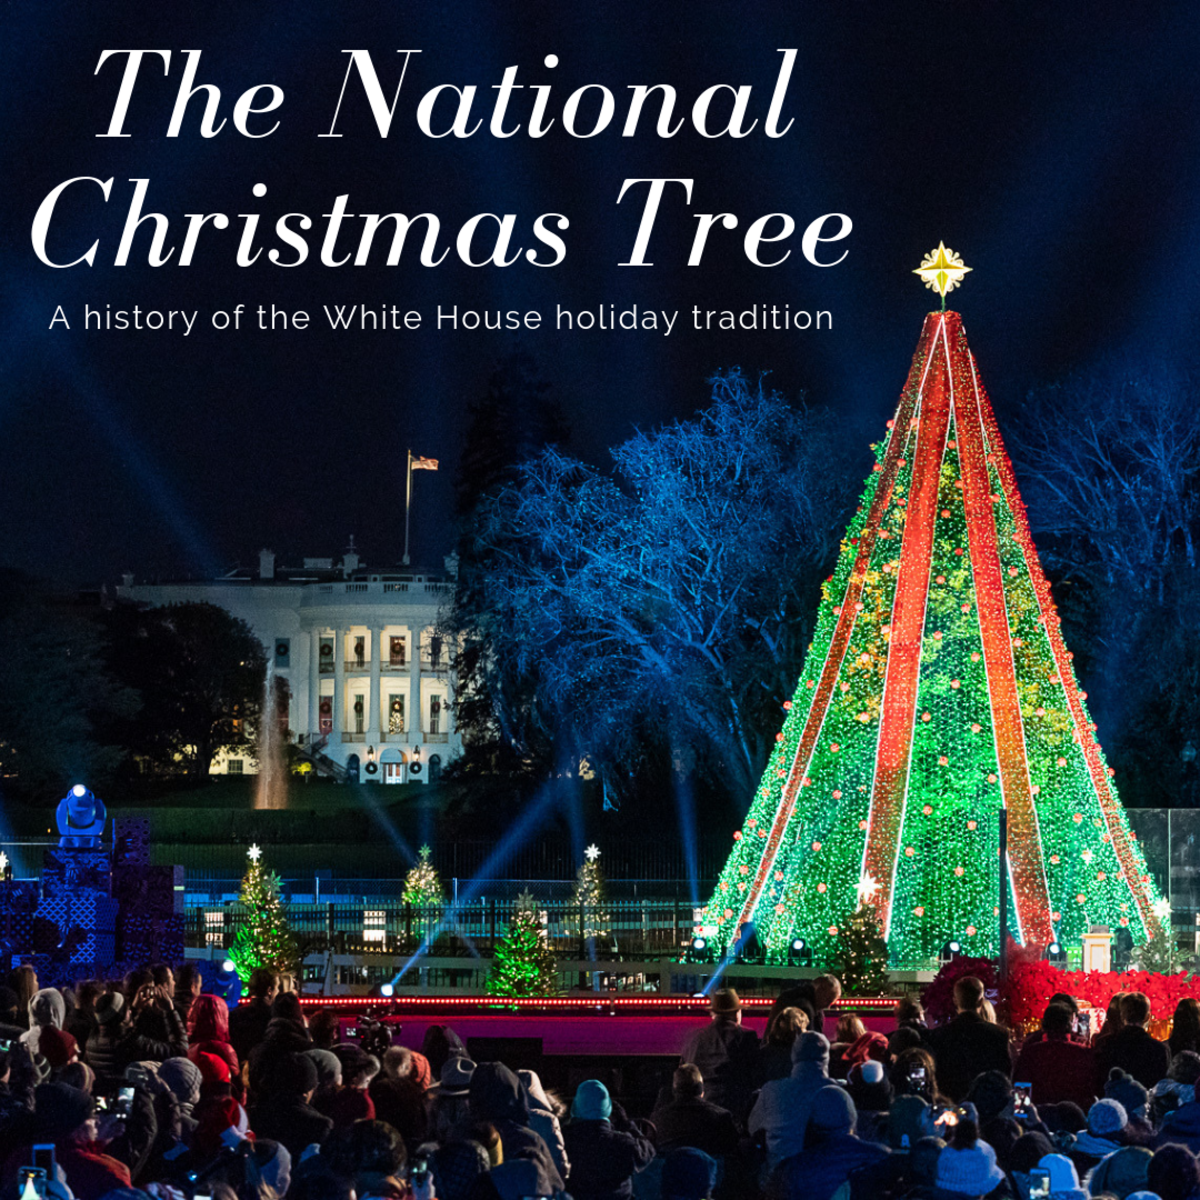 This article will break down the history of the National Christmas Tree located at the White House.